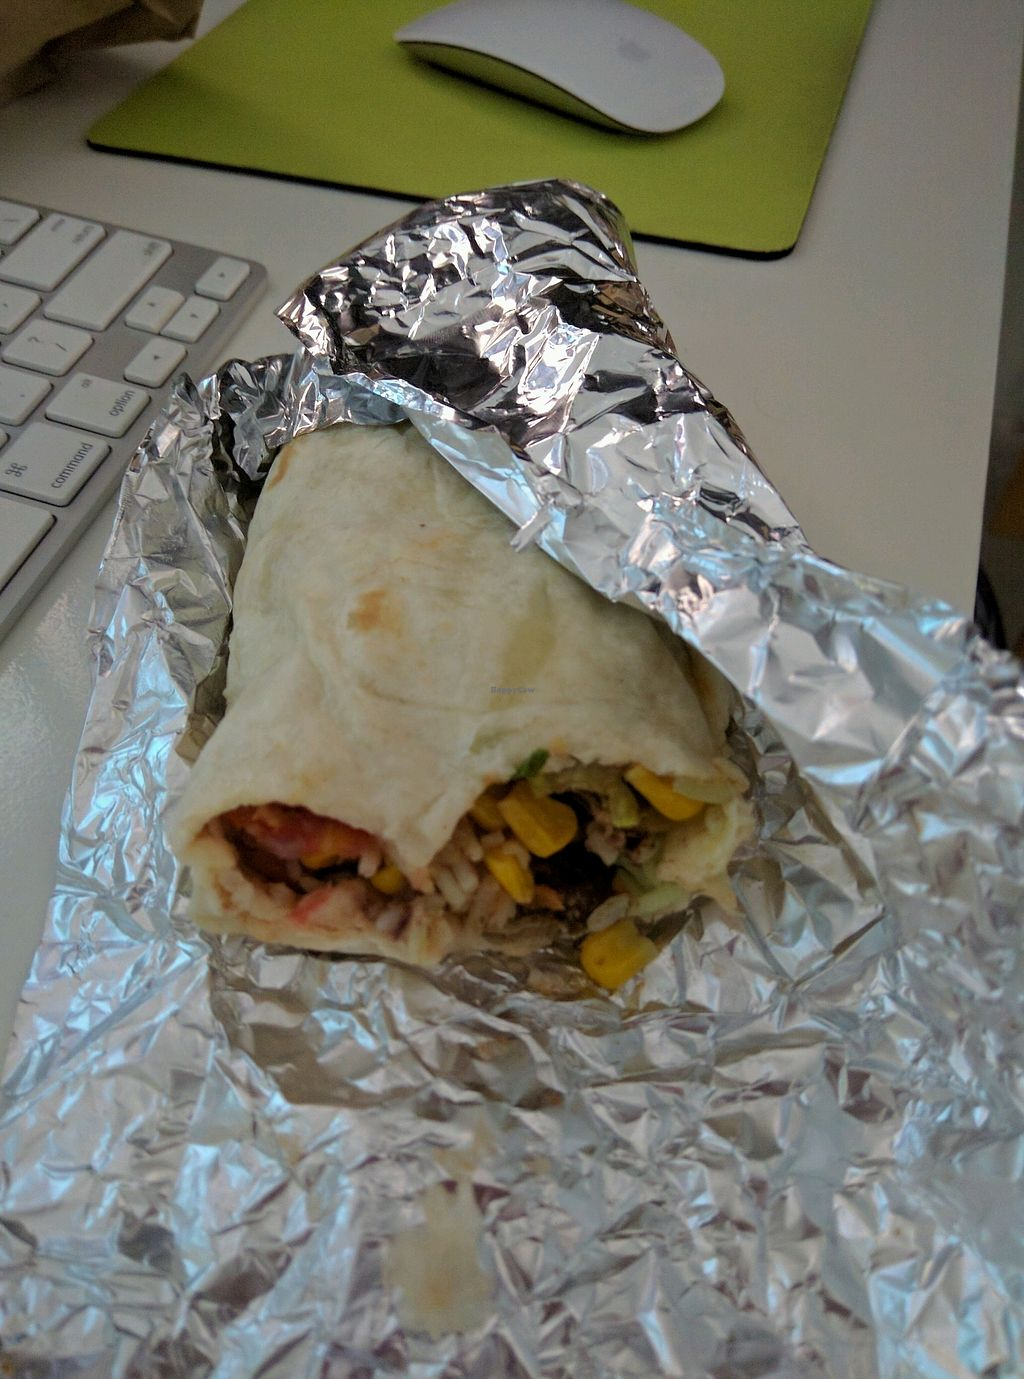 """Photo of CLOSED: Habanero - Queensbay Mall  by <a href=""""/members/profile/Summer_Tan"""">Summer_Tan</a> <br/>Vegetable Burrito with Cilantro Lime Rice and all the veggies Nacho Chips and Salsa RM11 (Vegetable Burrito) + RM4.50 (make it a meal with Nacho Chips and a Soft Drink) <br/> January 31, 2018  - <a href='/contact/abuse/image/52340/353257'>Report</a>"""